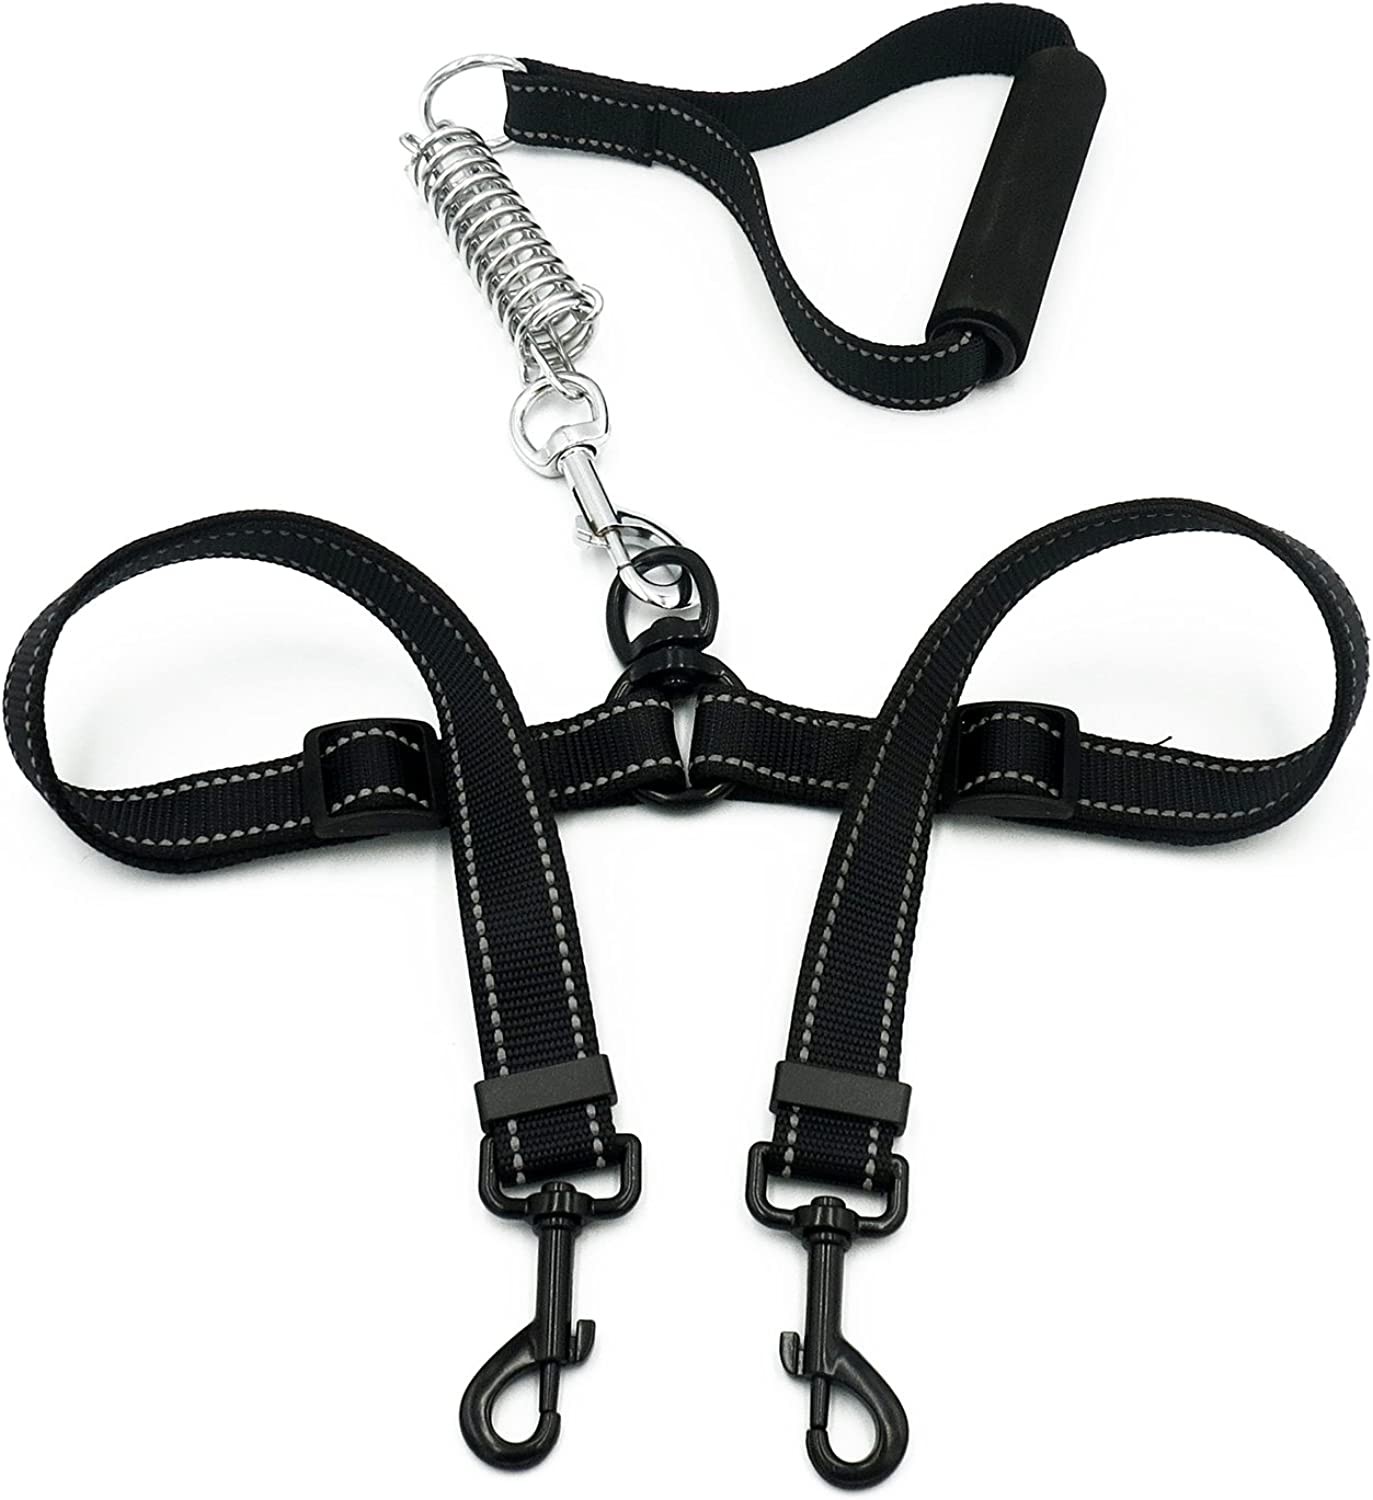 Clivia Double Dog Leash, No Tangle Dual Dog Walking & Training Leash with Spring Force Padded Handle and Shock Absorbing Bungee Lead by Walk 2 Dogs with Ease